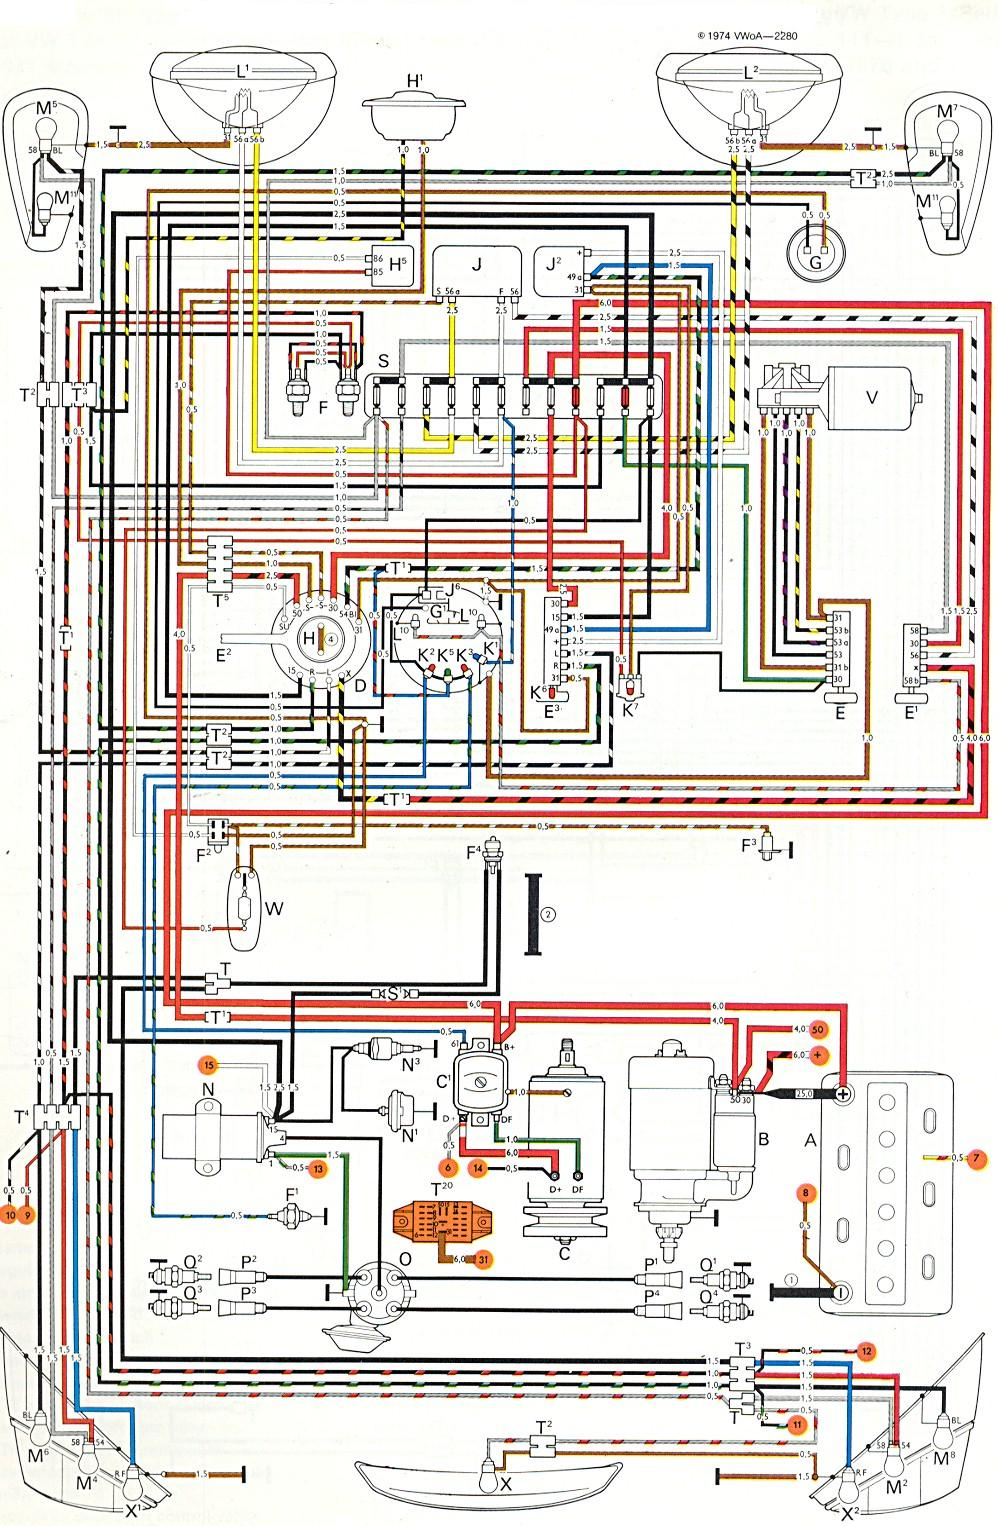 1966 beetle wiring diagram carbonvote mudit blog \u20221963 beetle wiring diagram 9 13 ms krankenfahrten de u2022 rh 9 13 ms krankenfahrten de